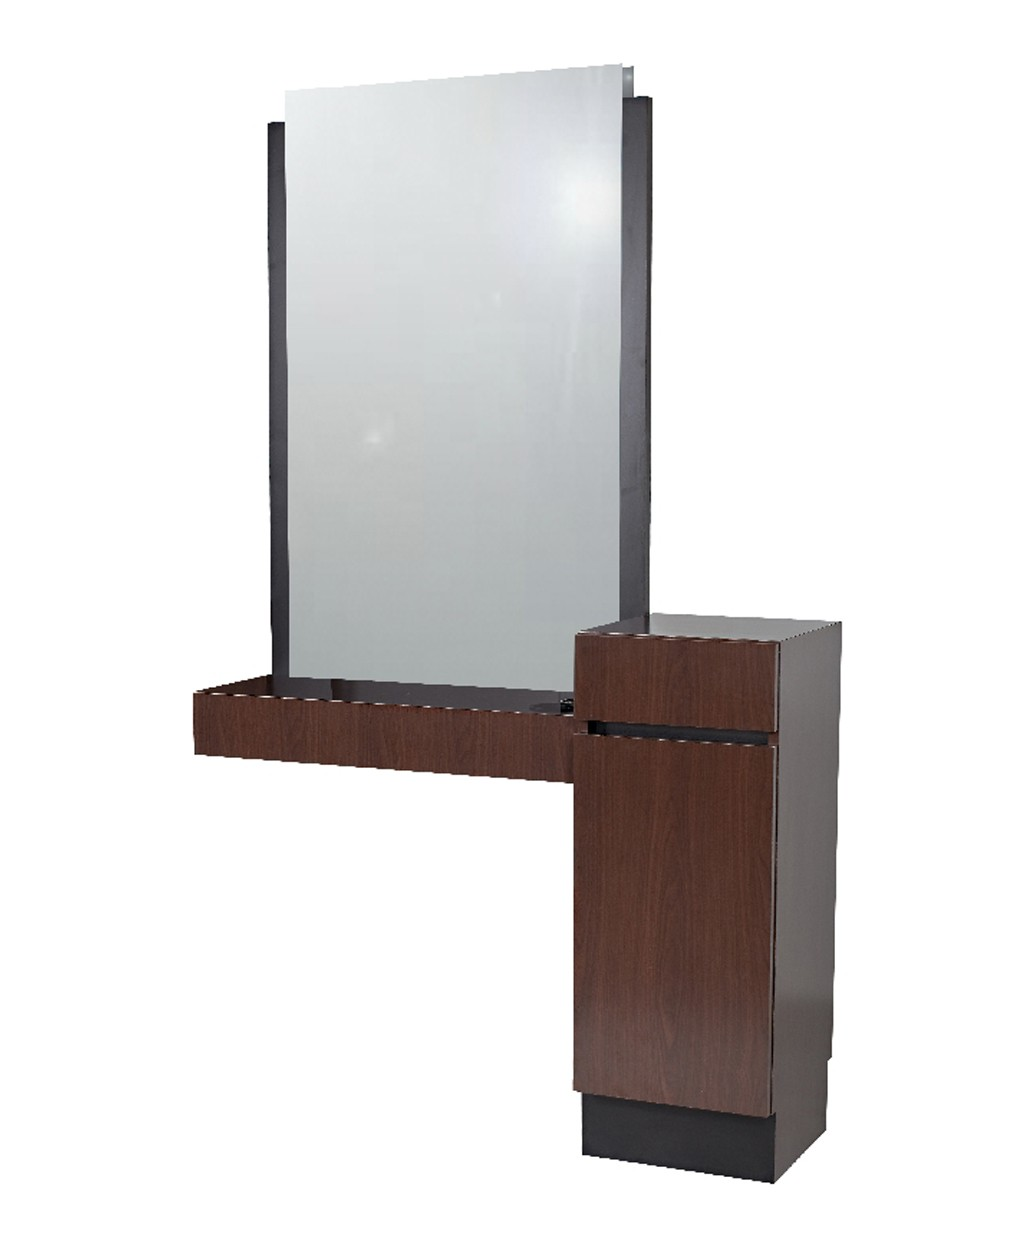 Collins QSE 465-48 Reve Styling Vanity & Ledge